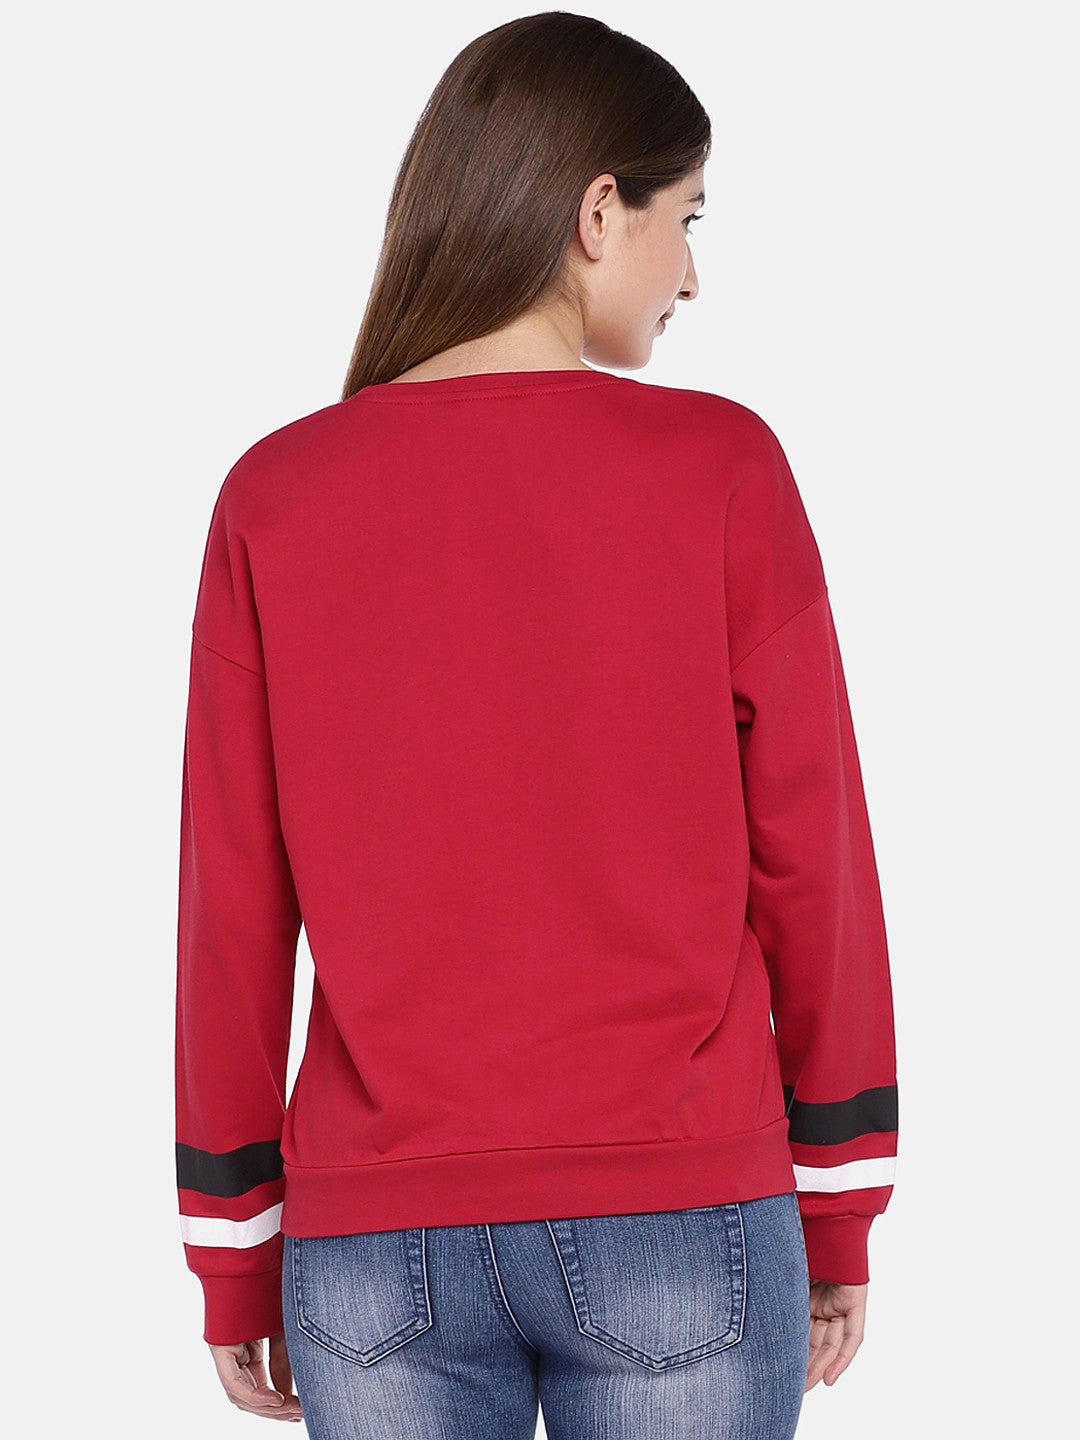 Red & Off-White Printed Sweatshirt-3